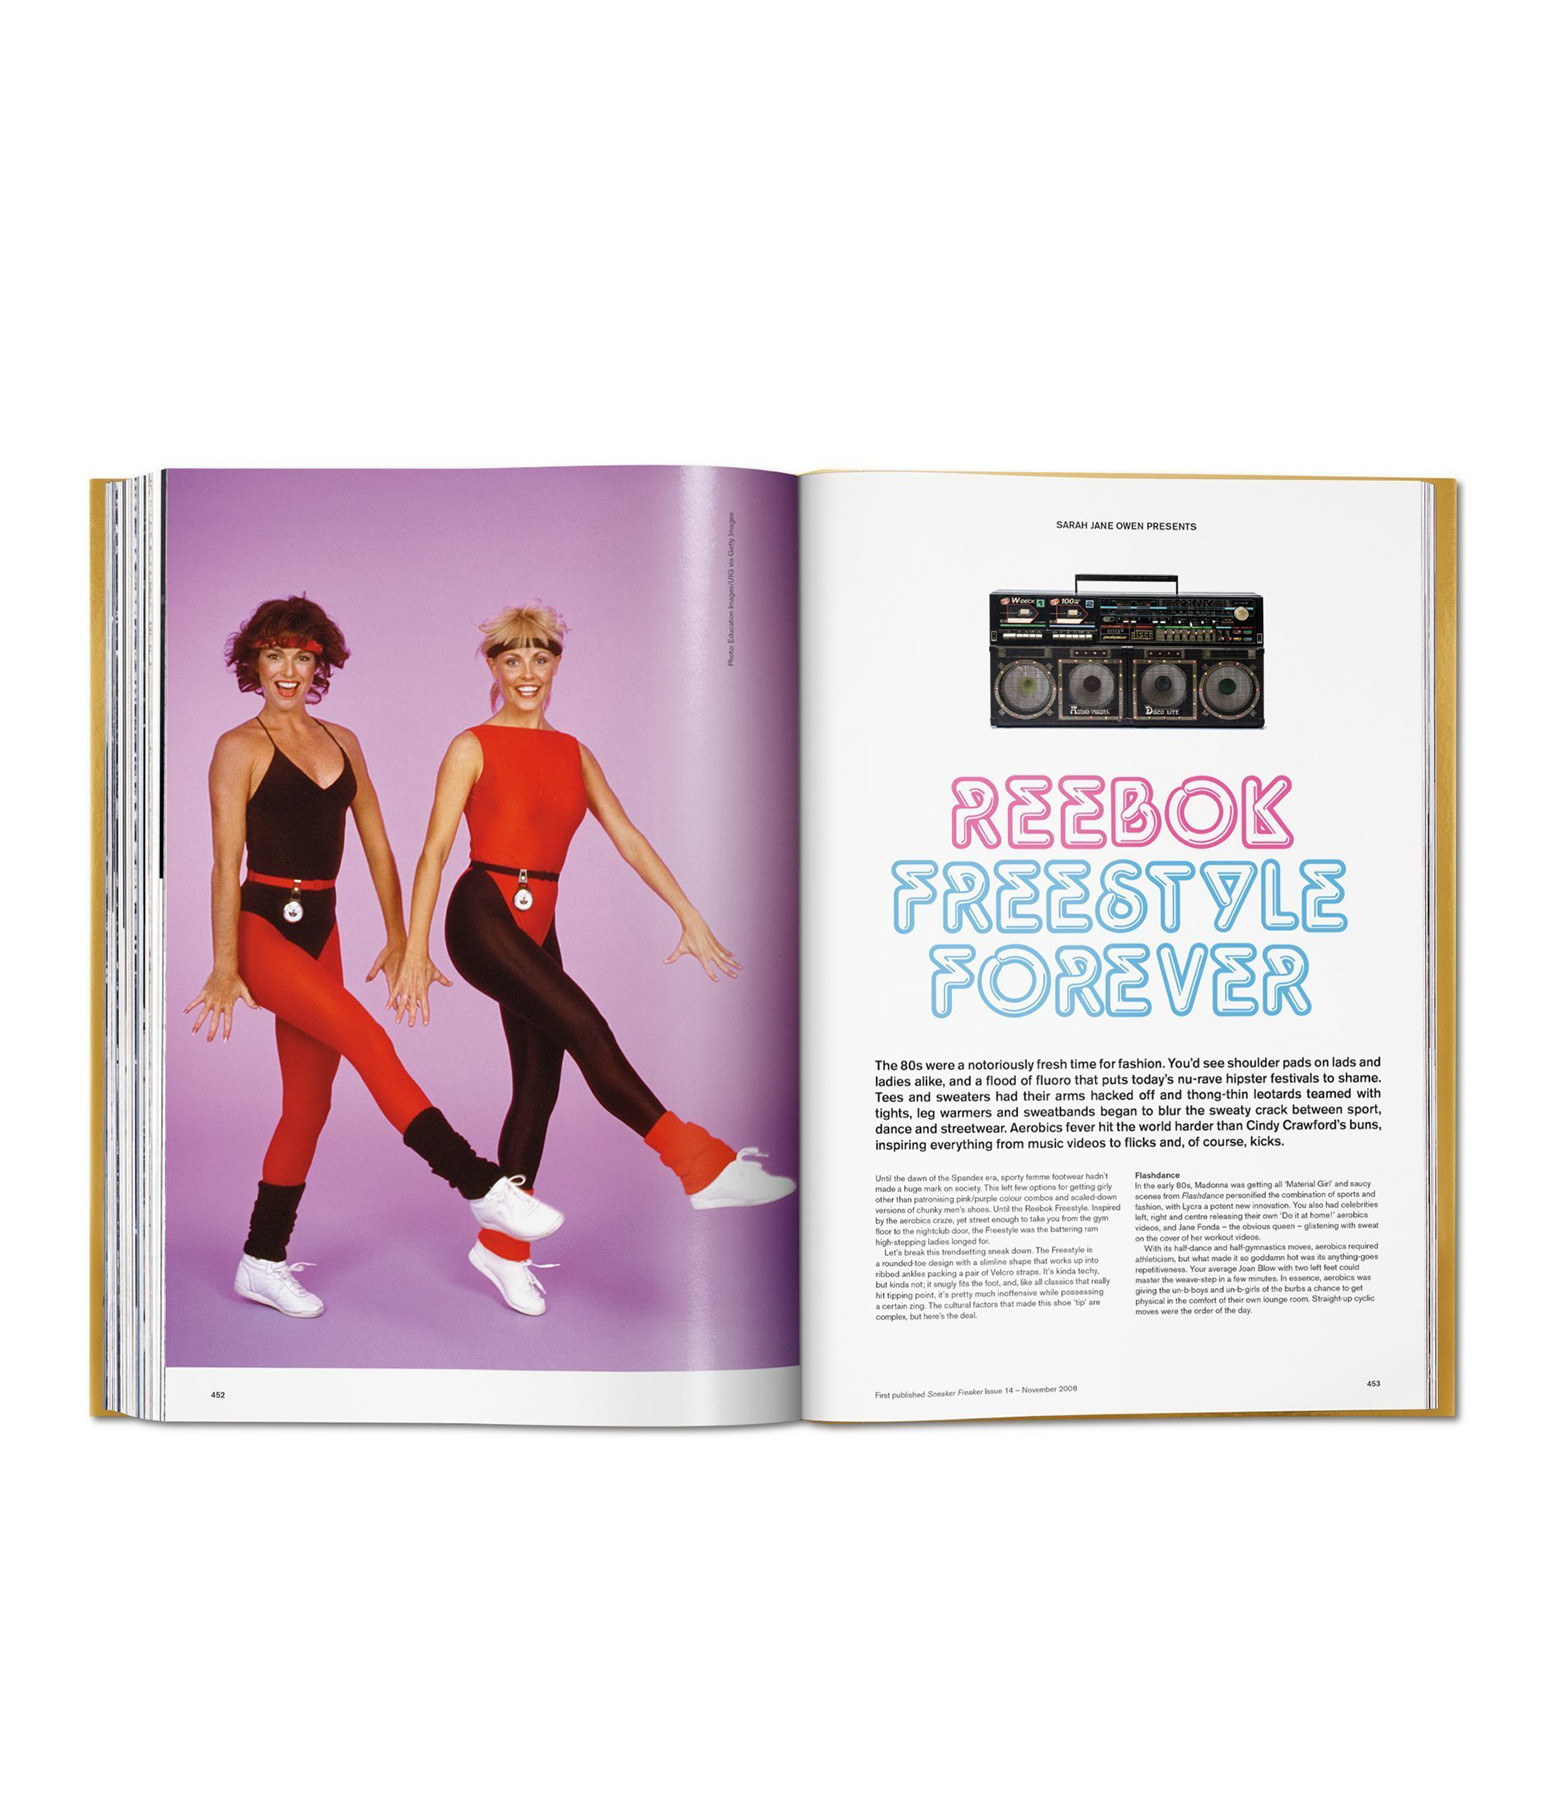 TASCHEN - Livre The Ultimate Sneaker Book